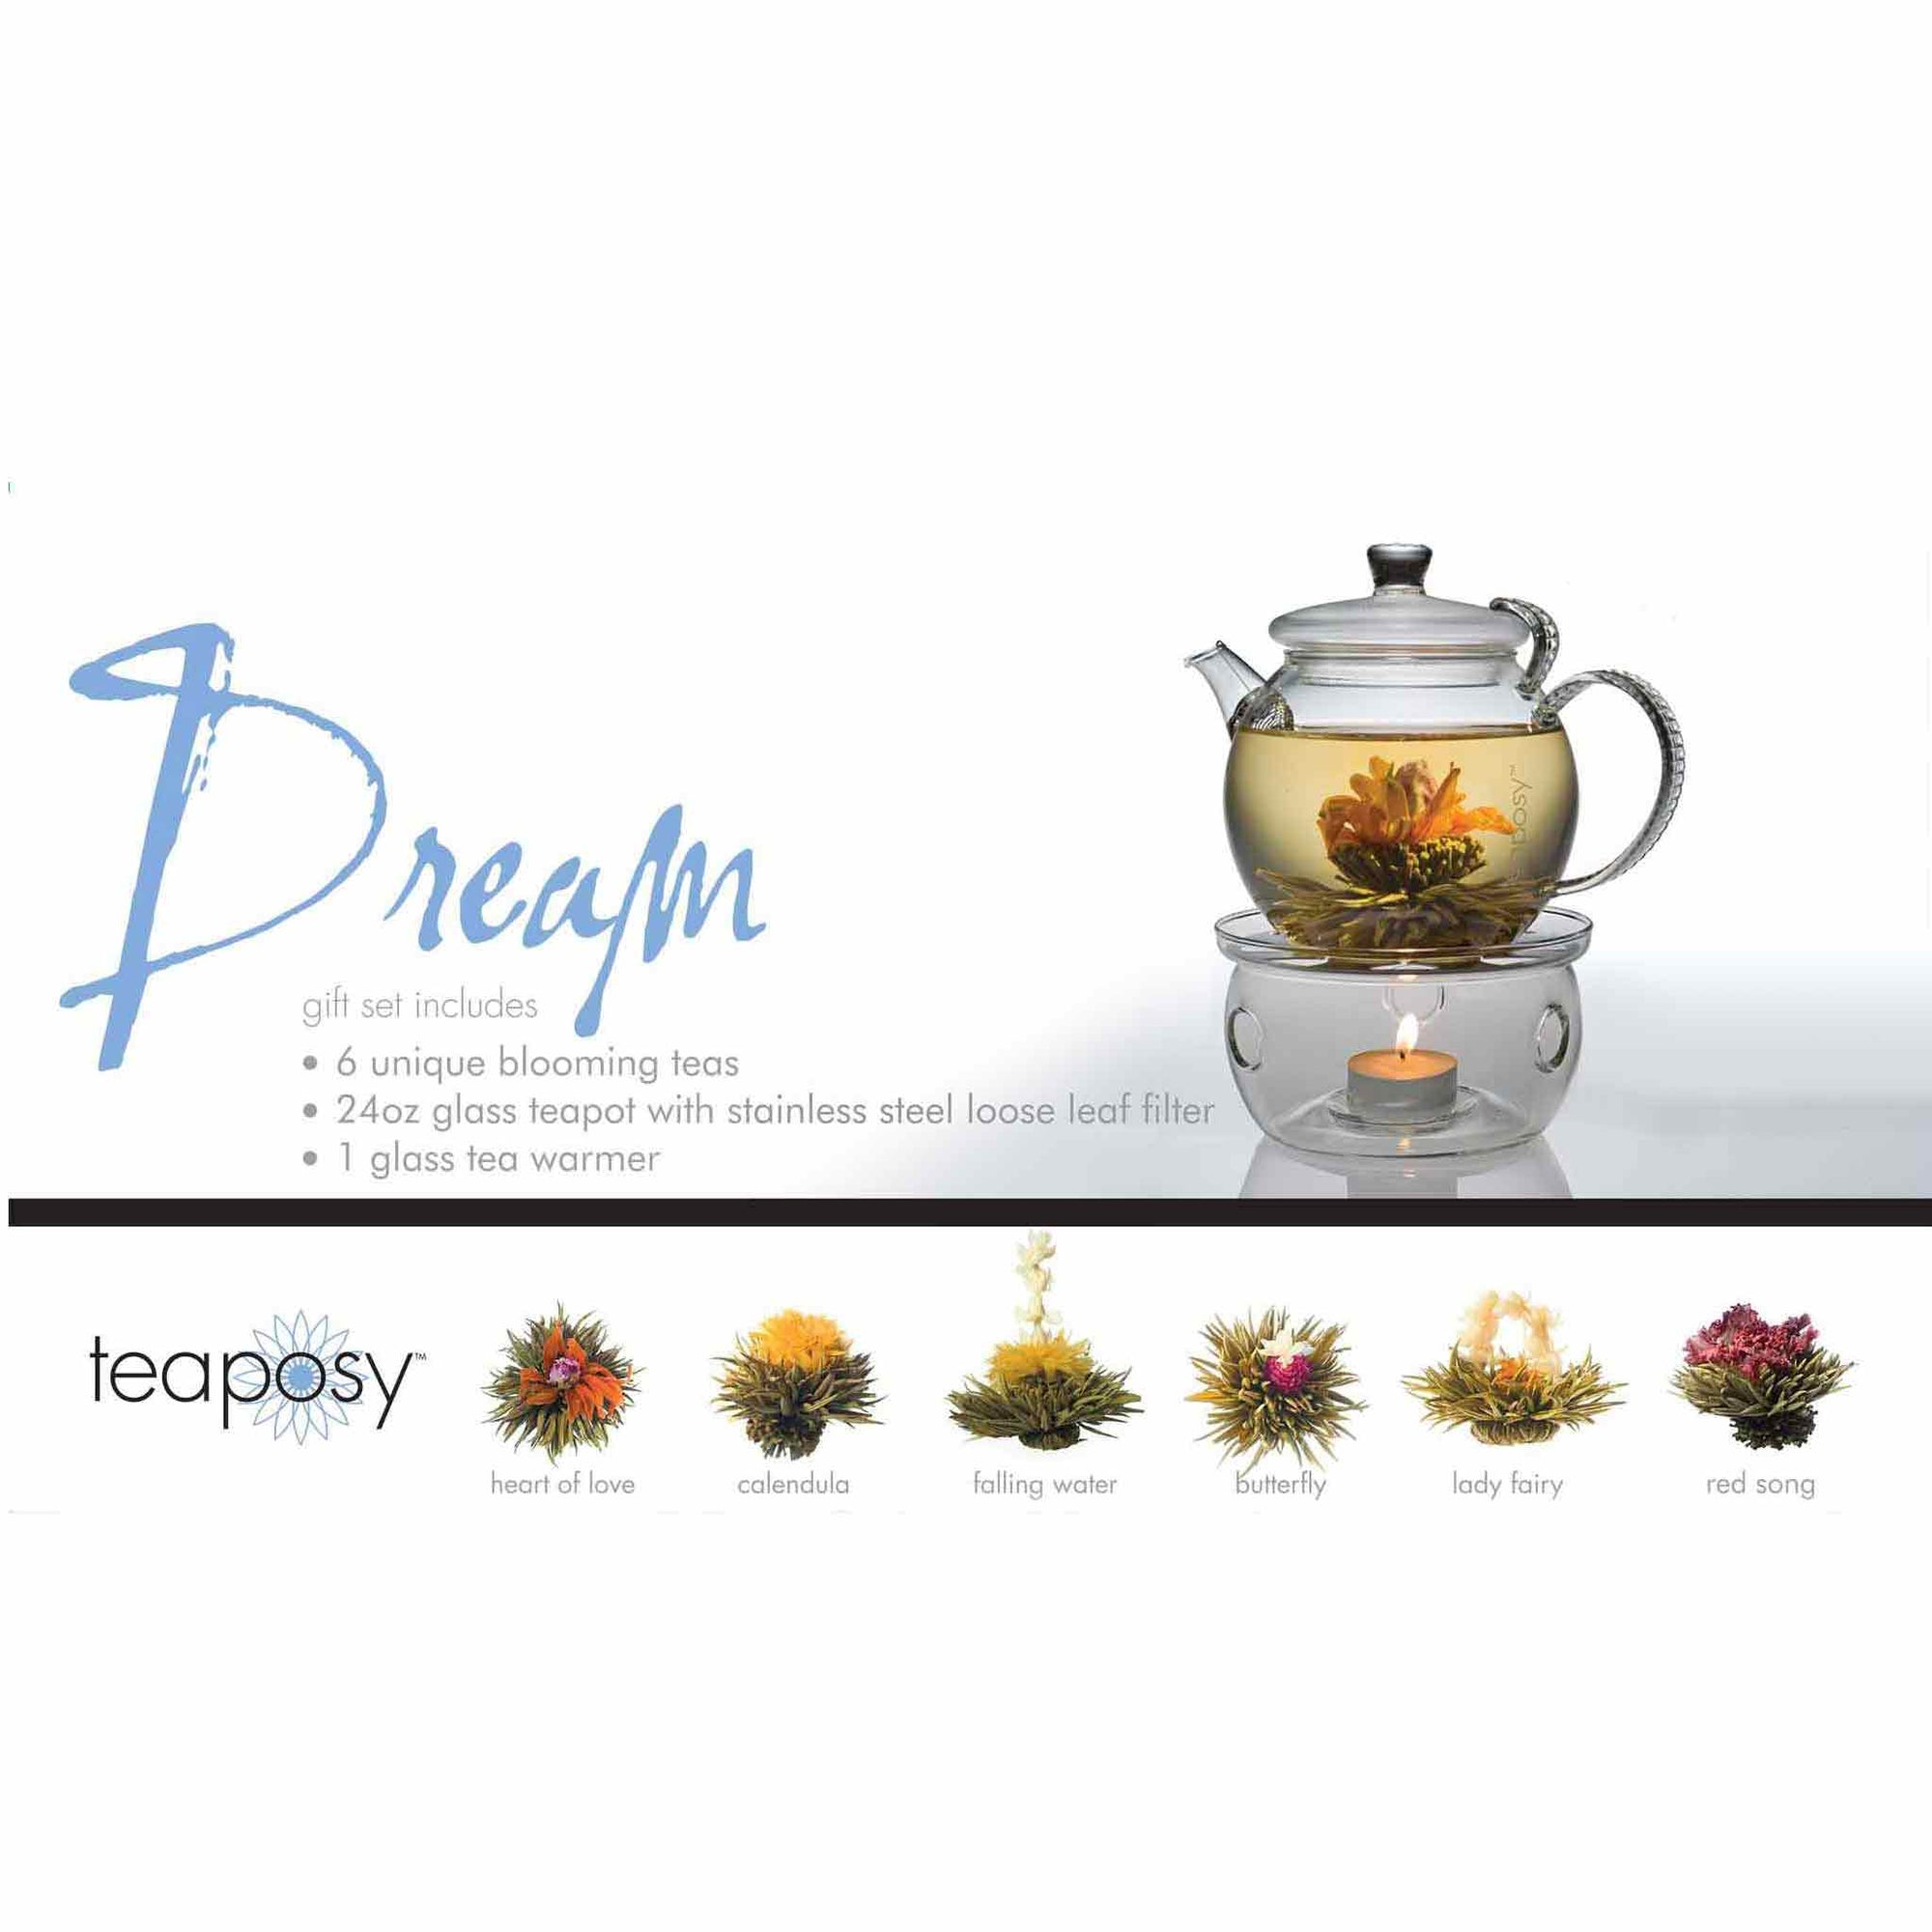 Teaposy dream posy gift set with 6 unique blooming teas, a 24 oz daydream glass teapot and the light my fire tea warmer